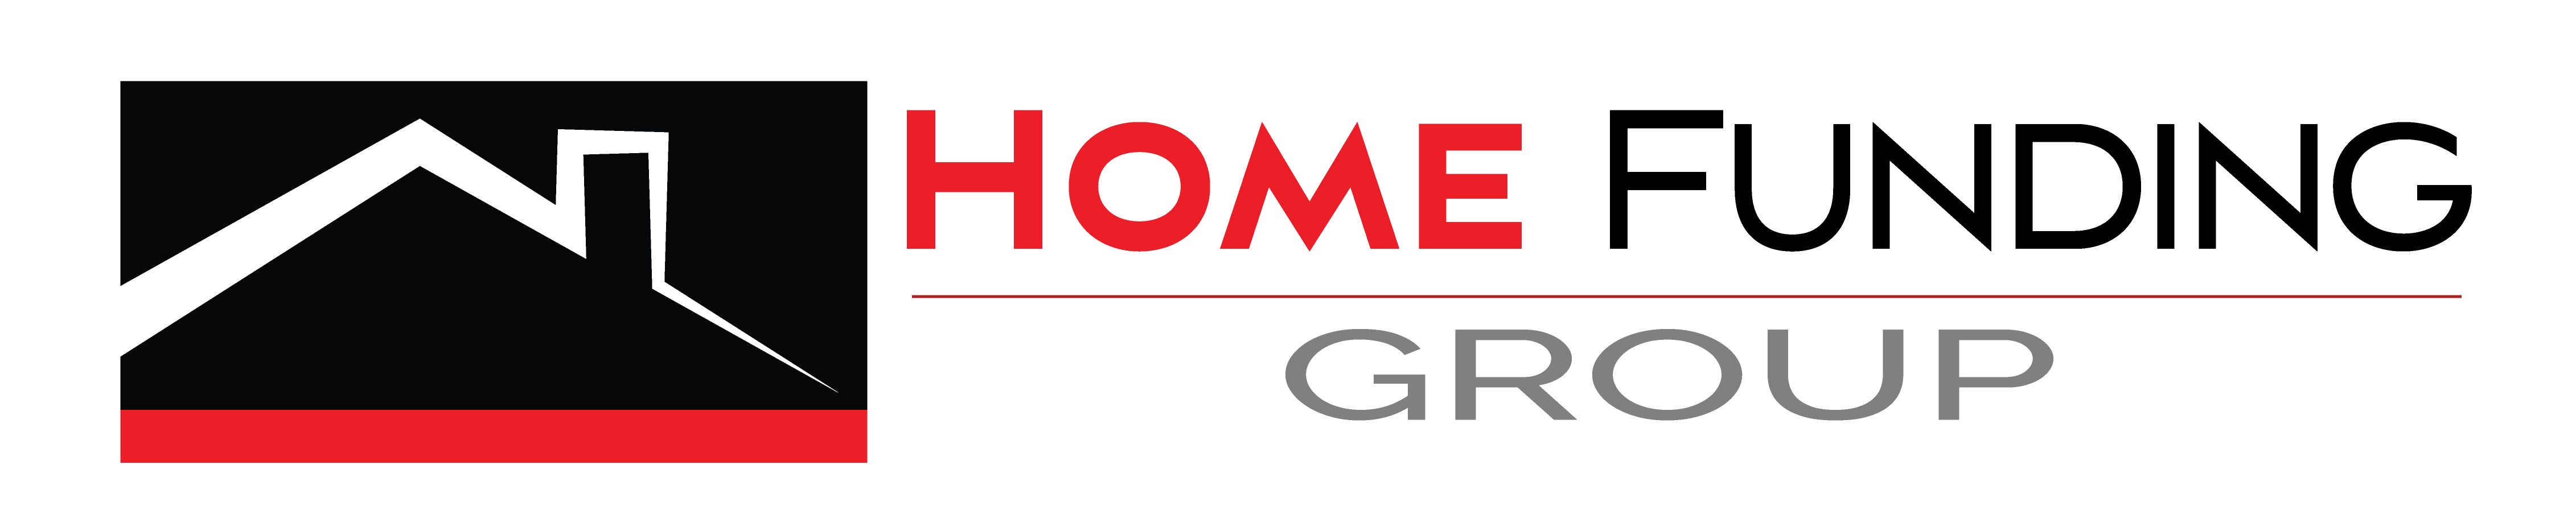 Home Funding Group